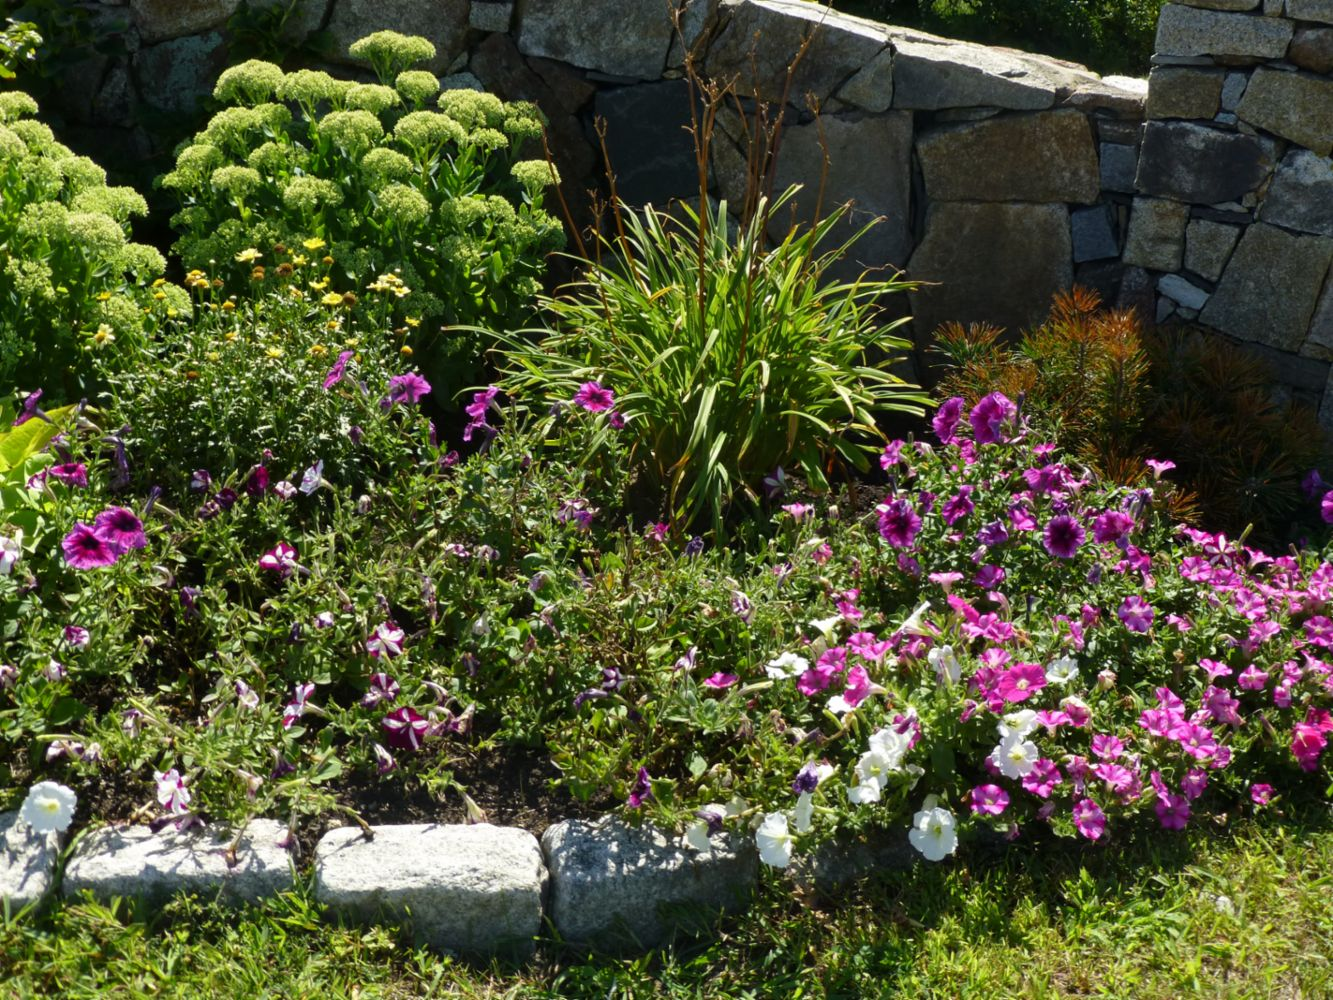 Landscaping design and maintenance in brooklyn ny great for Garden design llc